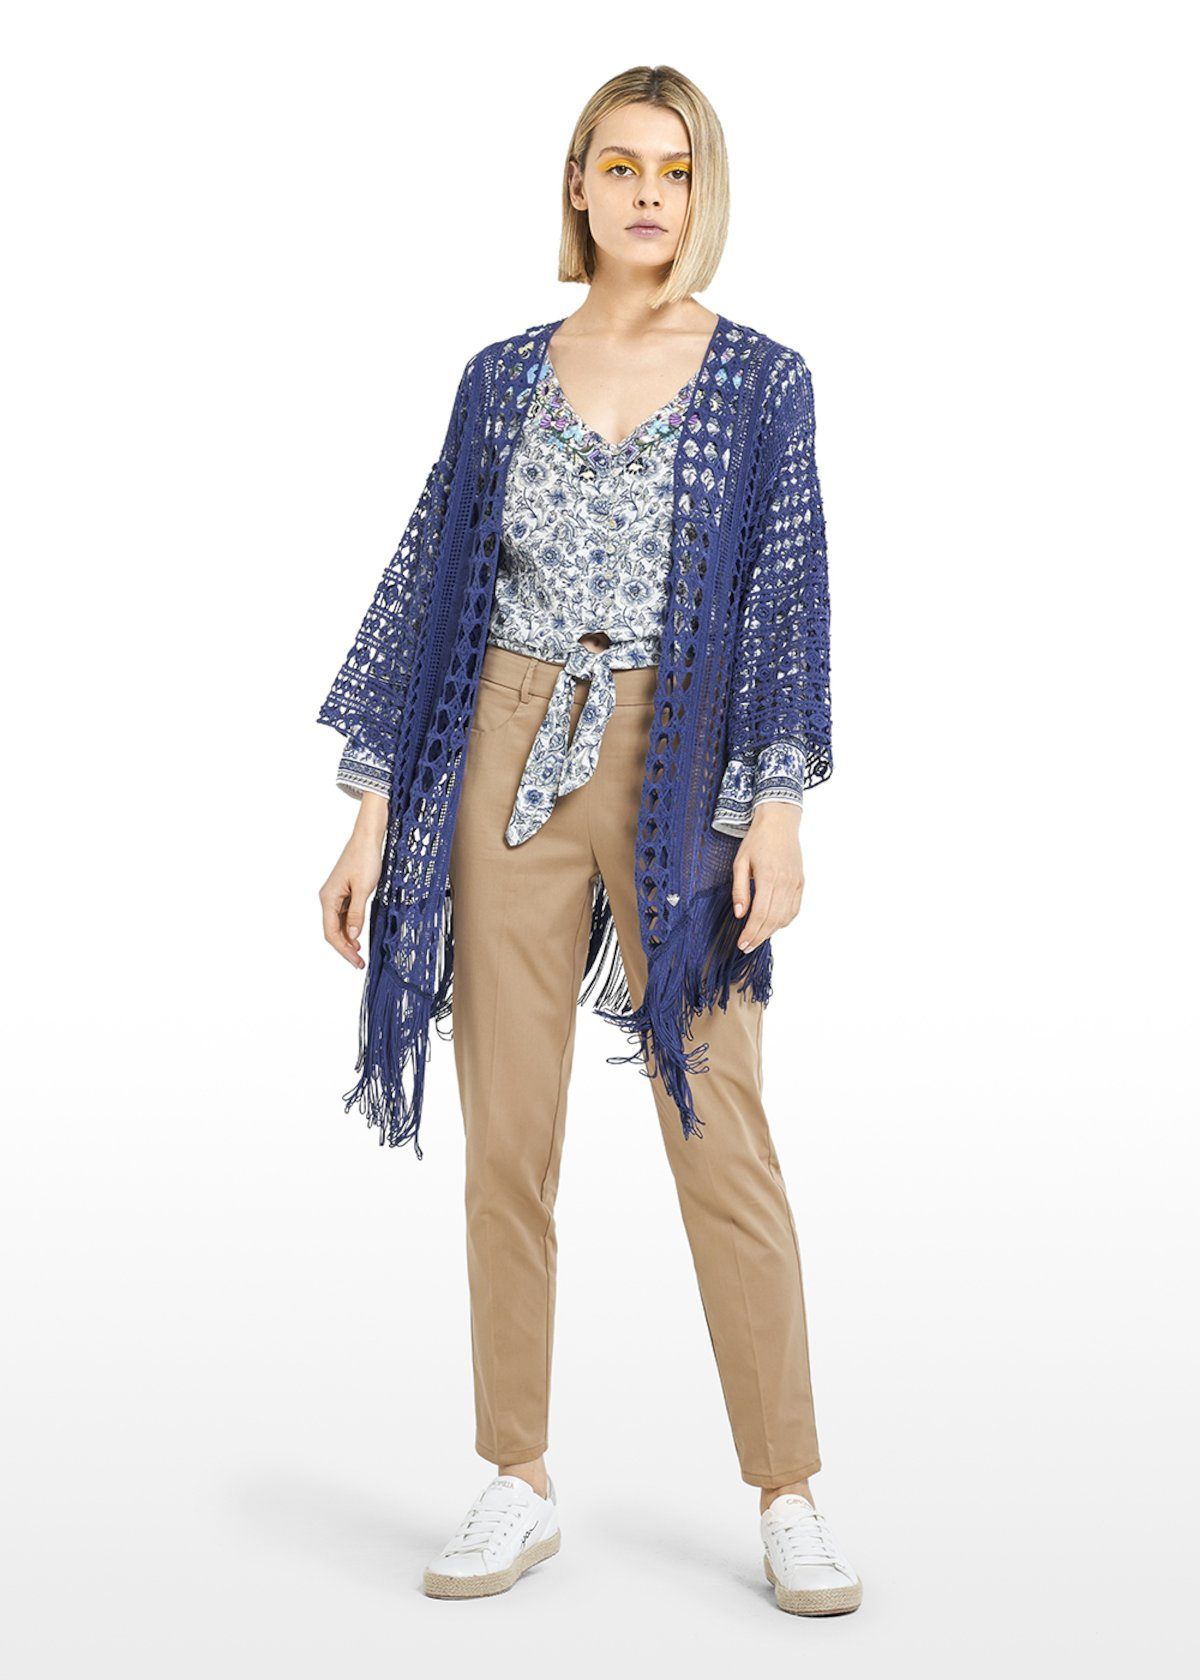 Cardigan lungo Cloedy con frange al fondo - Avion - Donna - Immagine categoria